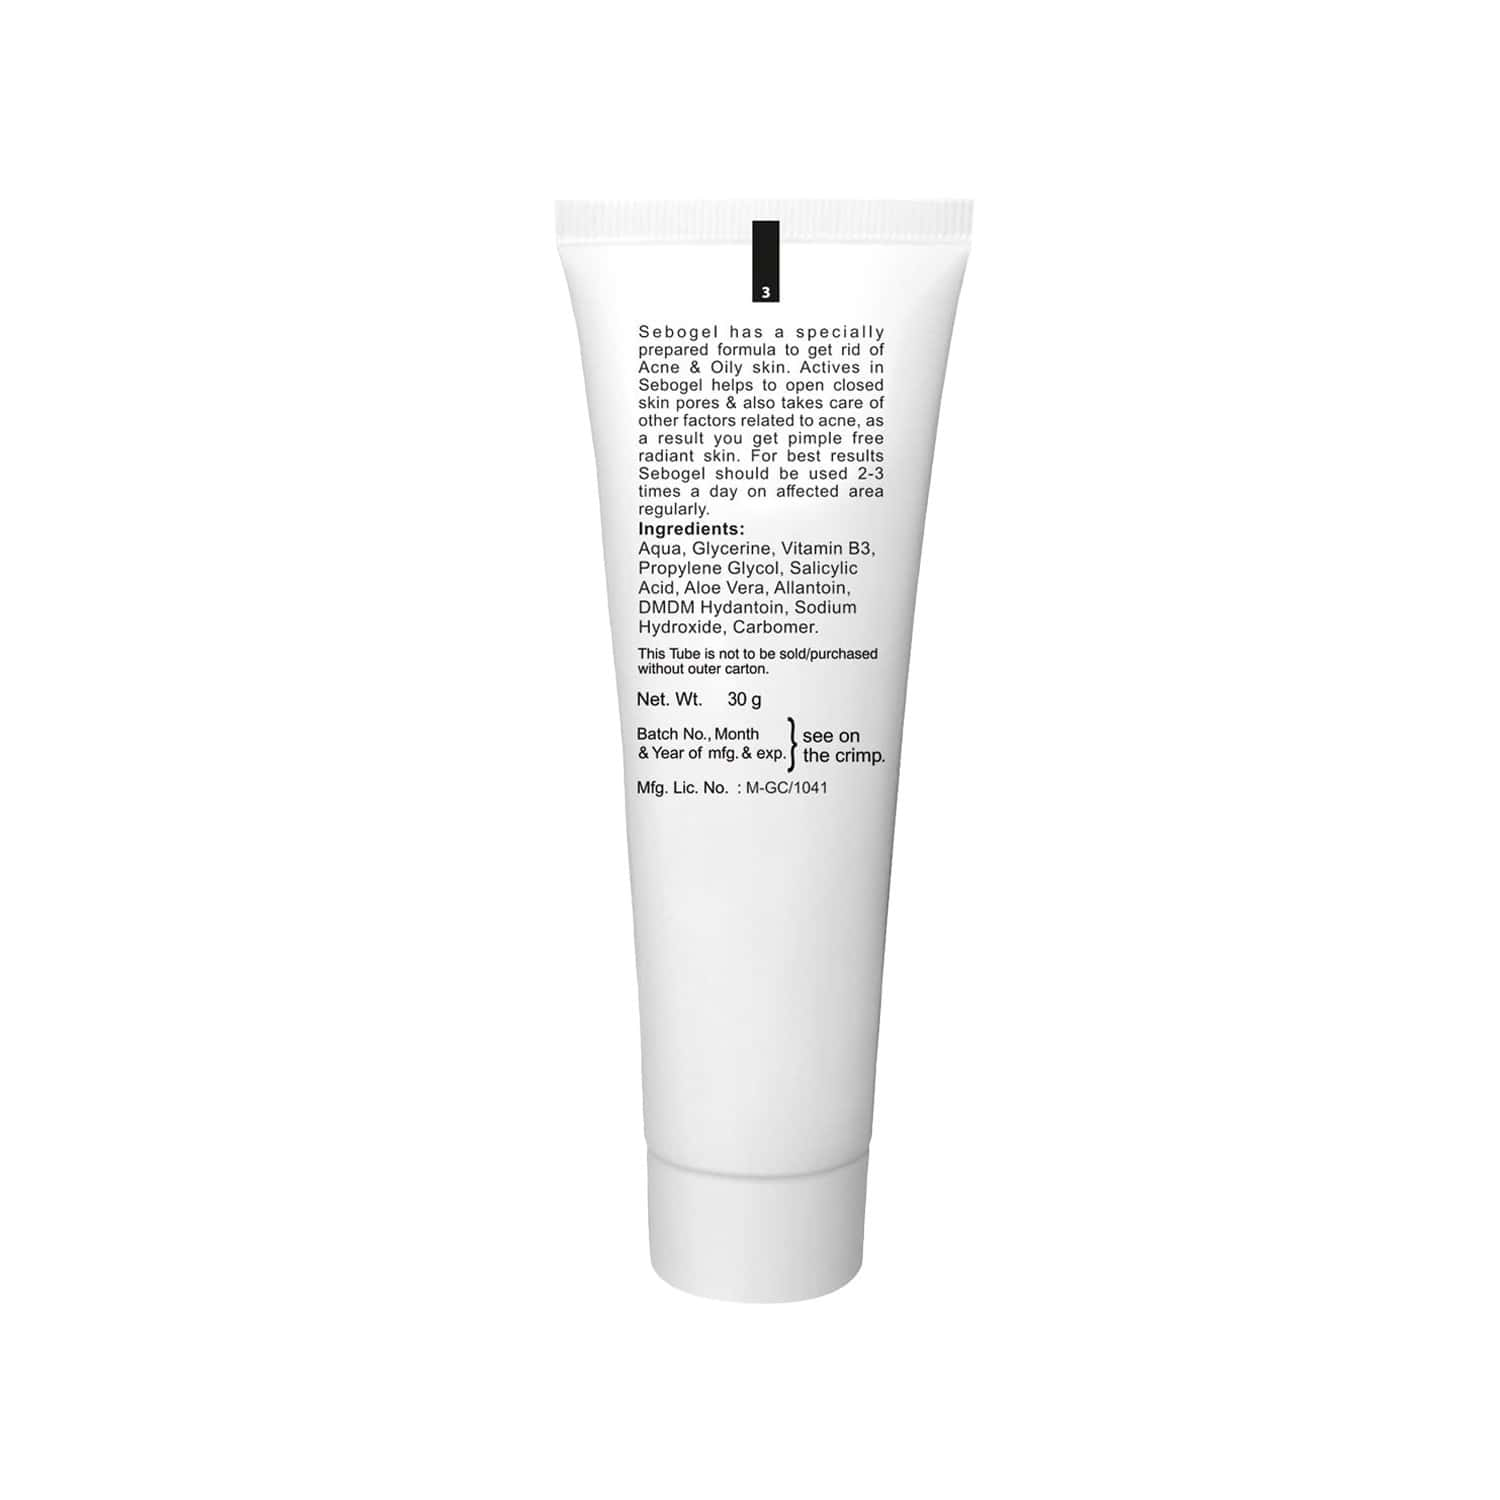 Sebogel Salicylic Acid & Nicotinamide Gel For Pimples And Oily Skin - 30gm